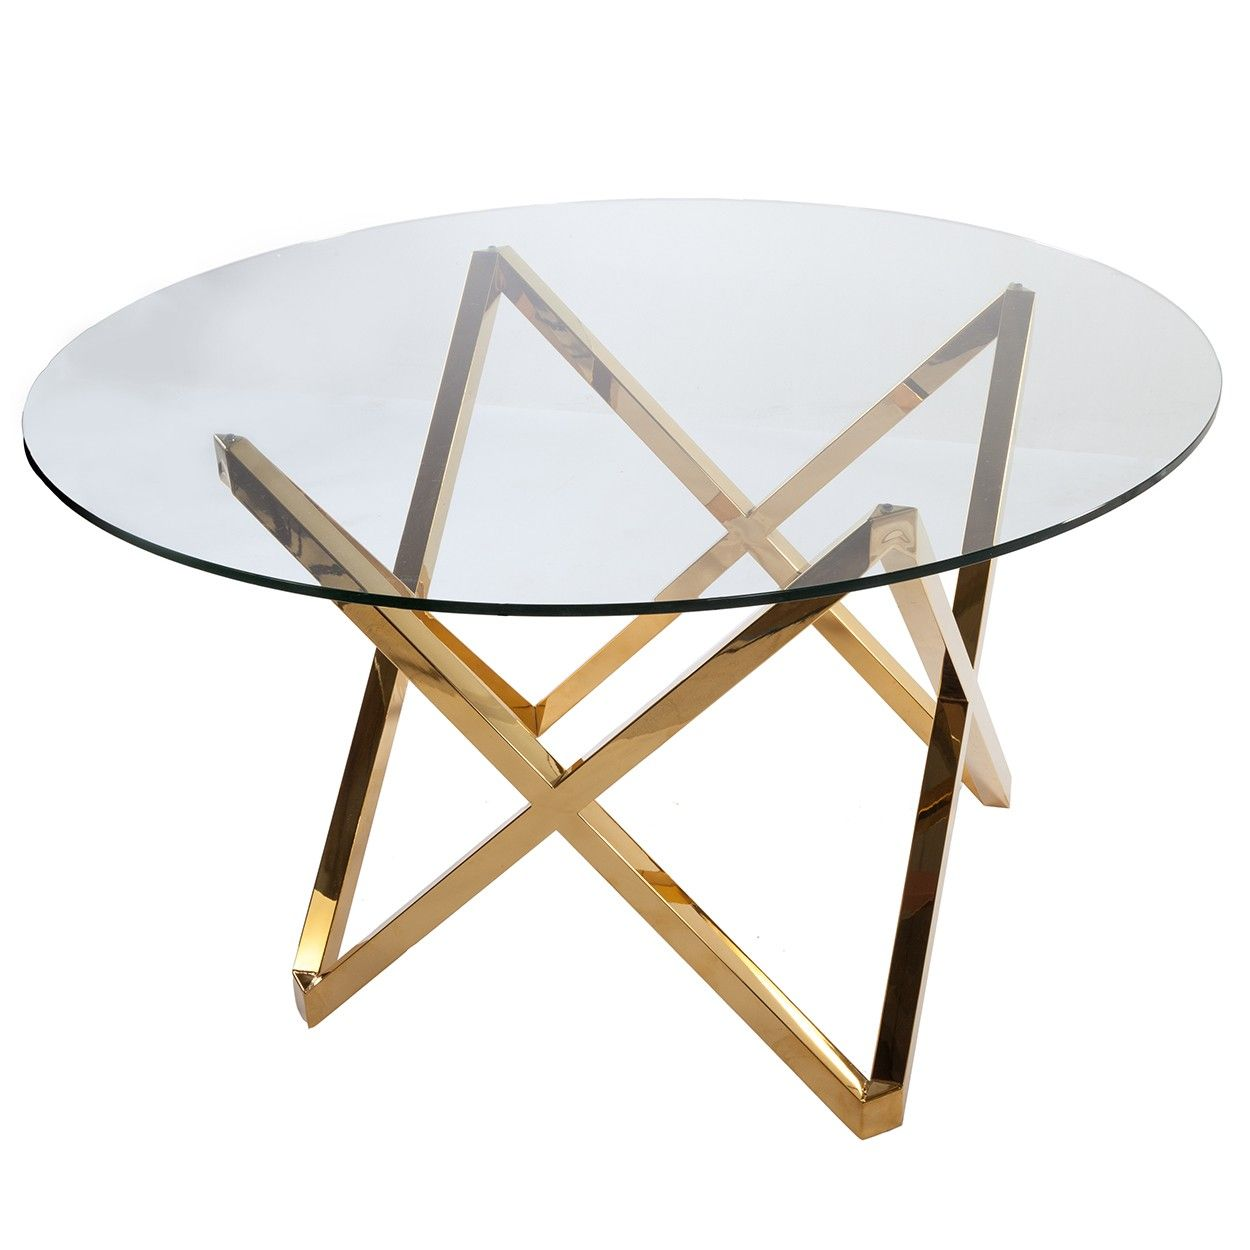 Galvin dining table gold glass round dining table for Glass dining table